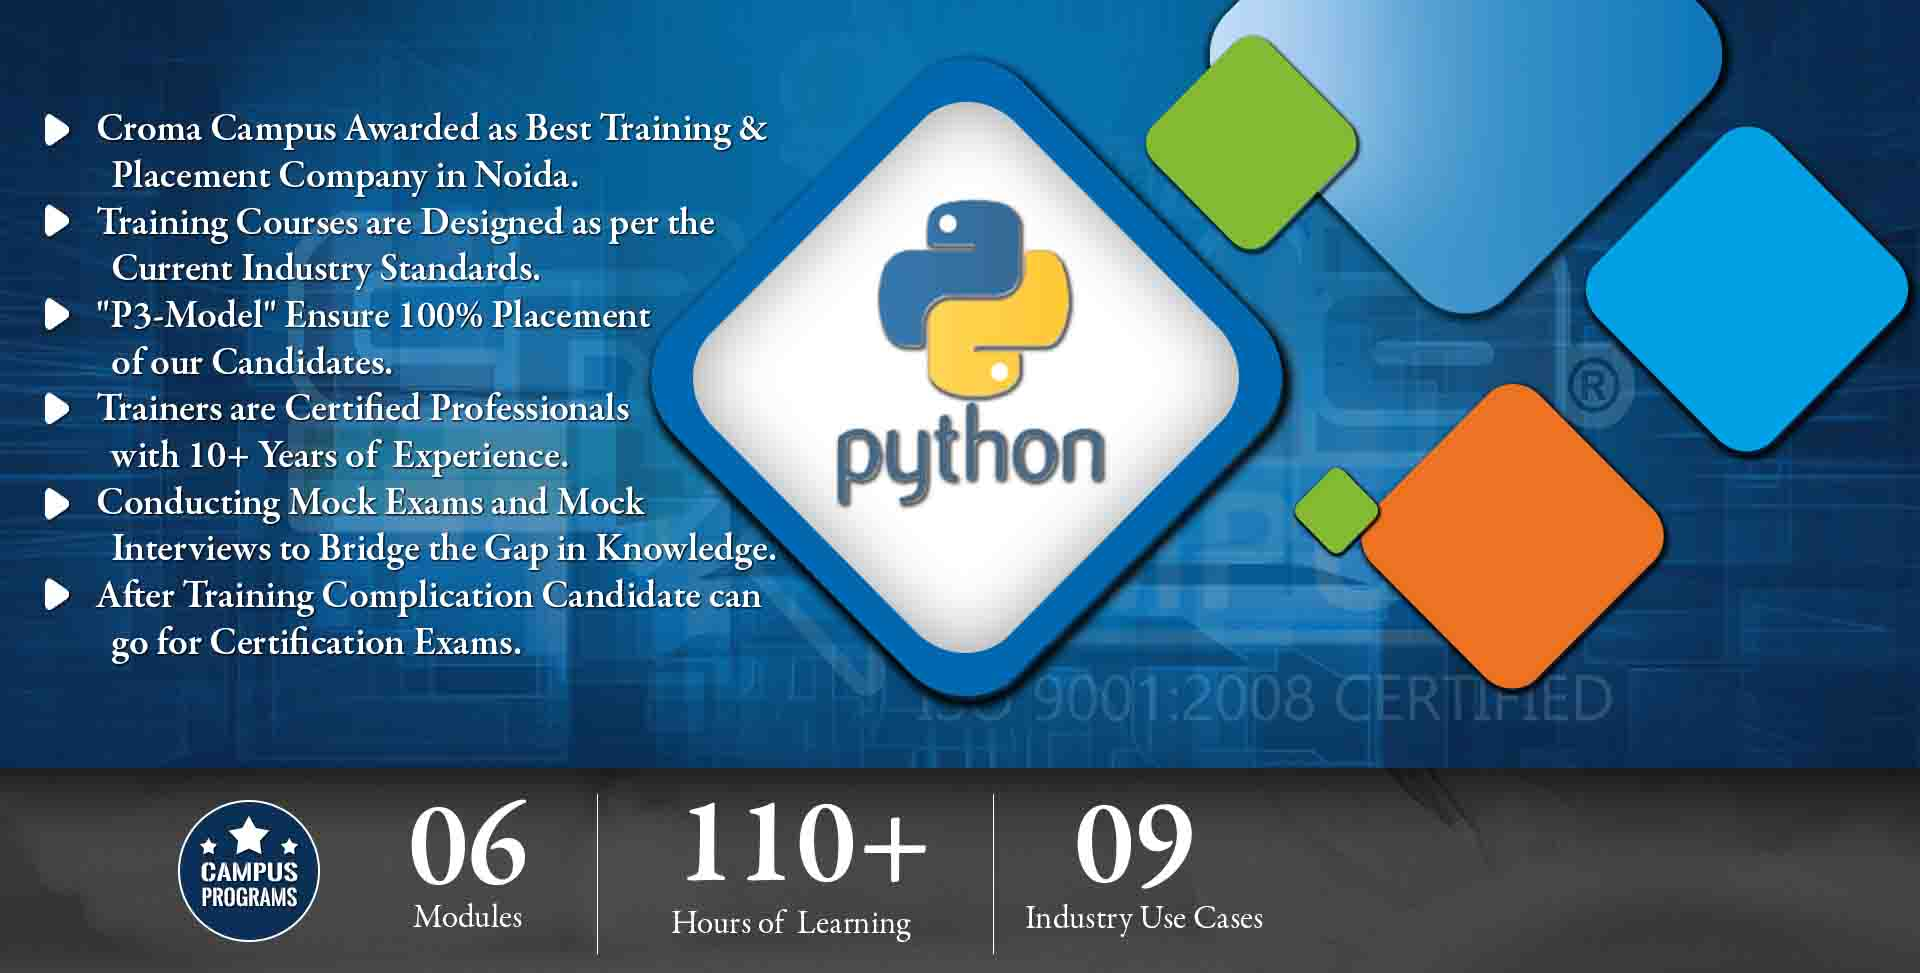 Python Training in Noida- Croma Campus